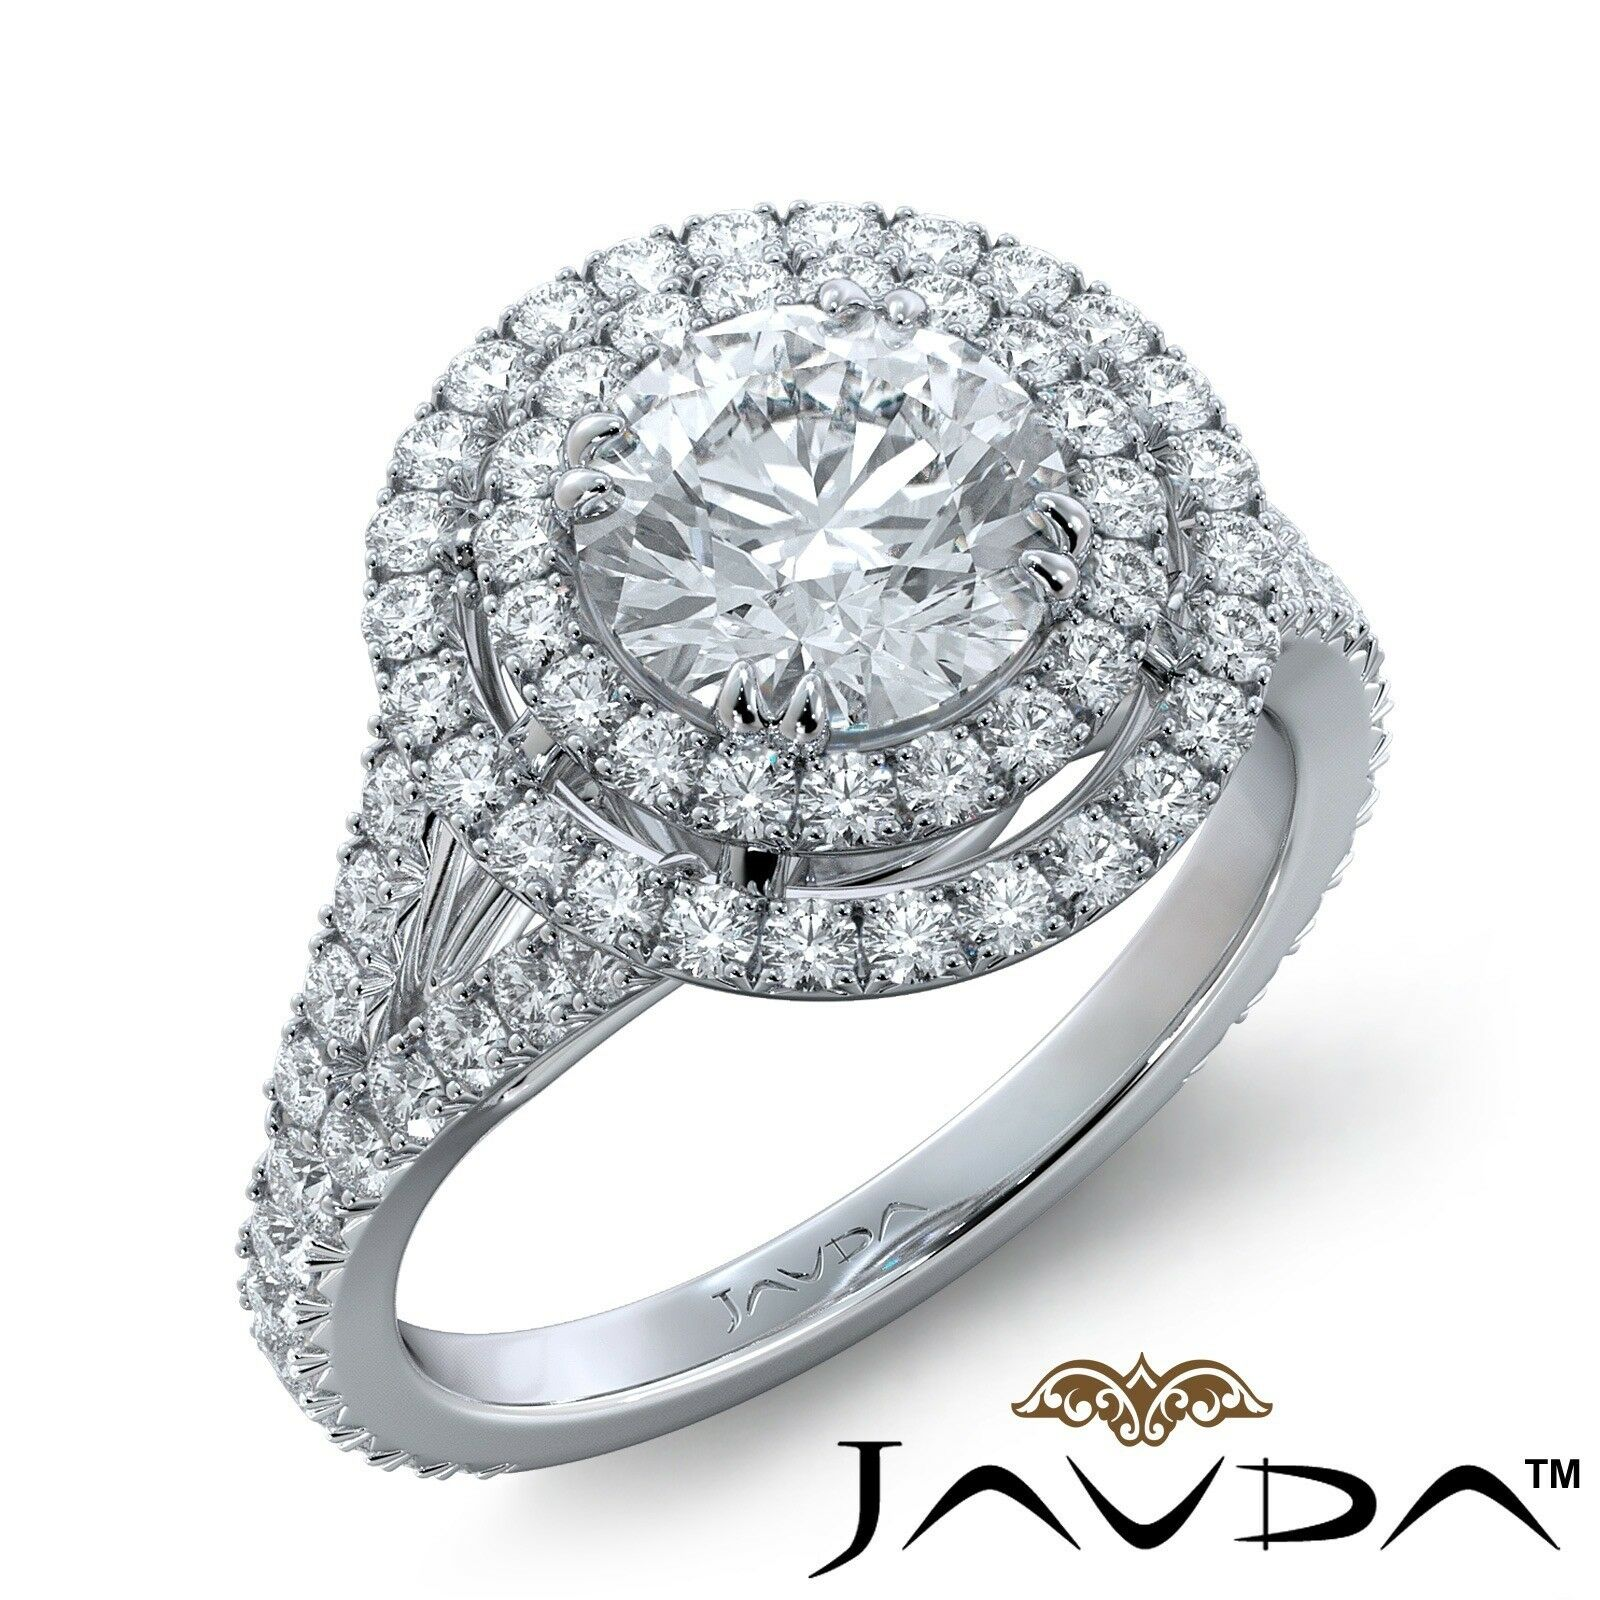 4.3ct French V Cut Pave Gala Halo Round Diamond Engagement Ring GIA I-SI1 W Gold